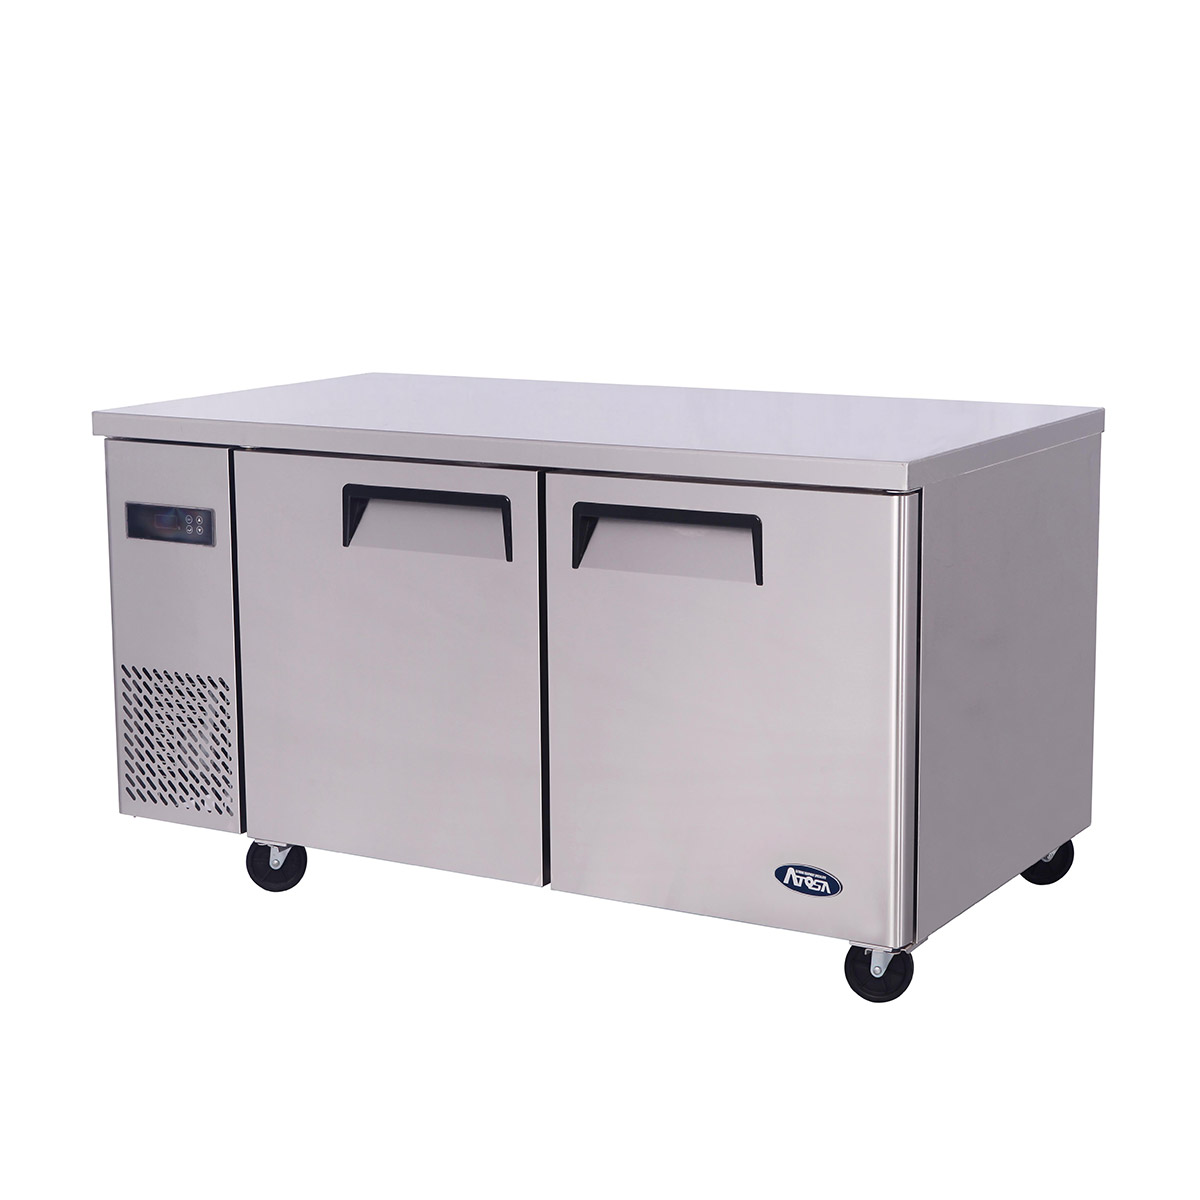 Atosa YPF9037GR Wide Two Door Undercounter Freezer 370ltrs